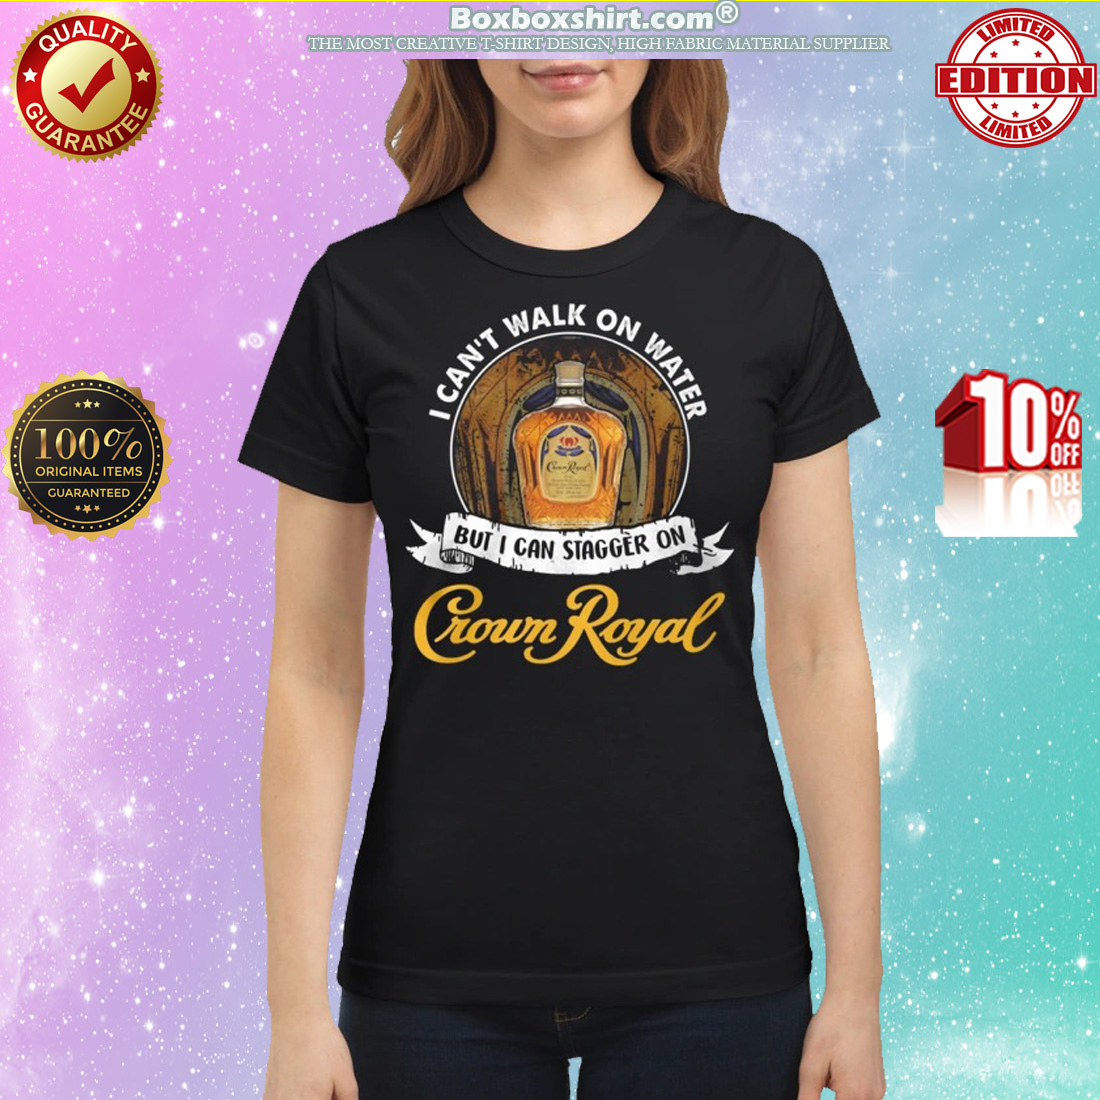 I can't not walk on water but I can stagger on Crown Royal classic shirt